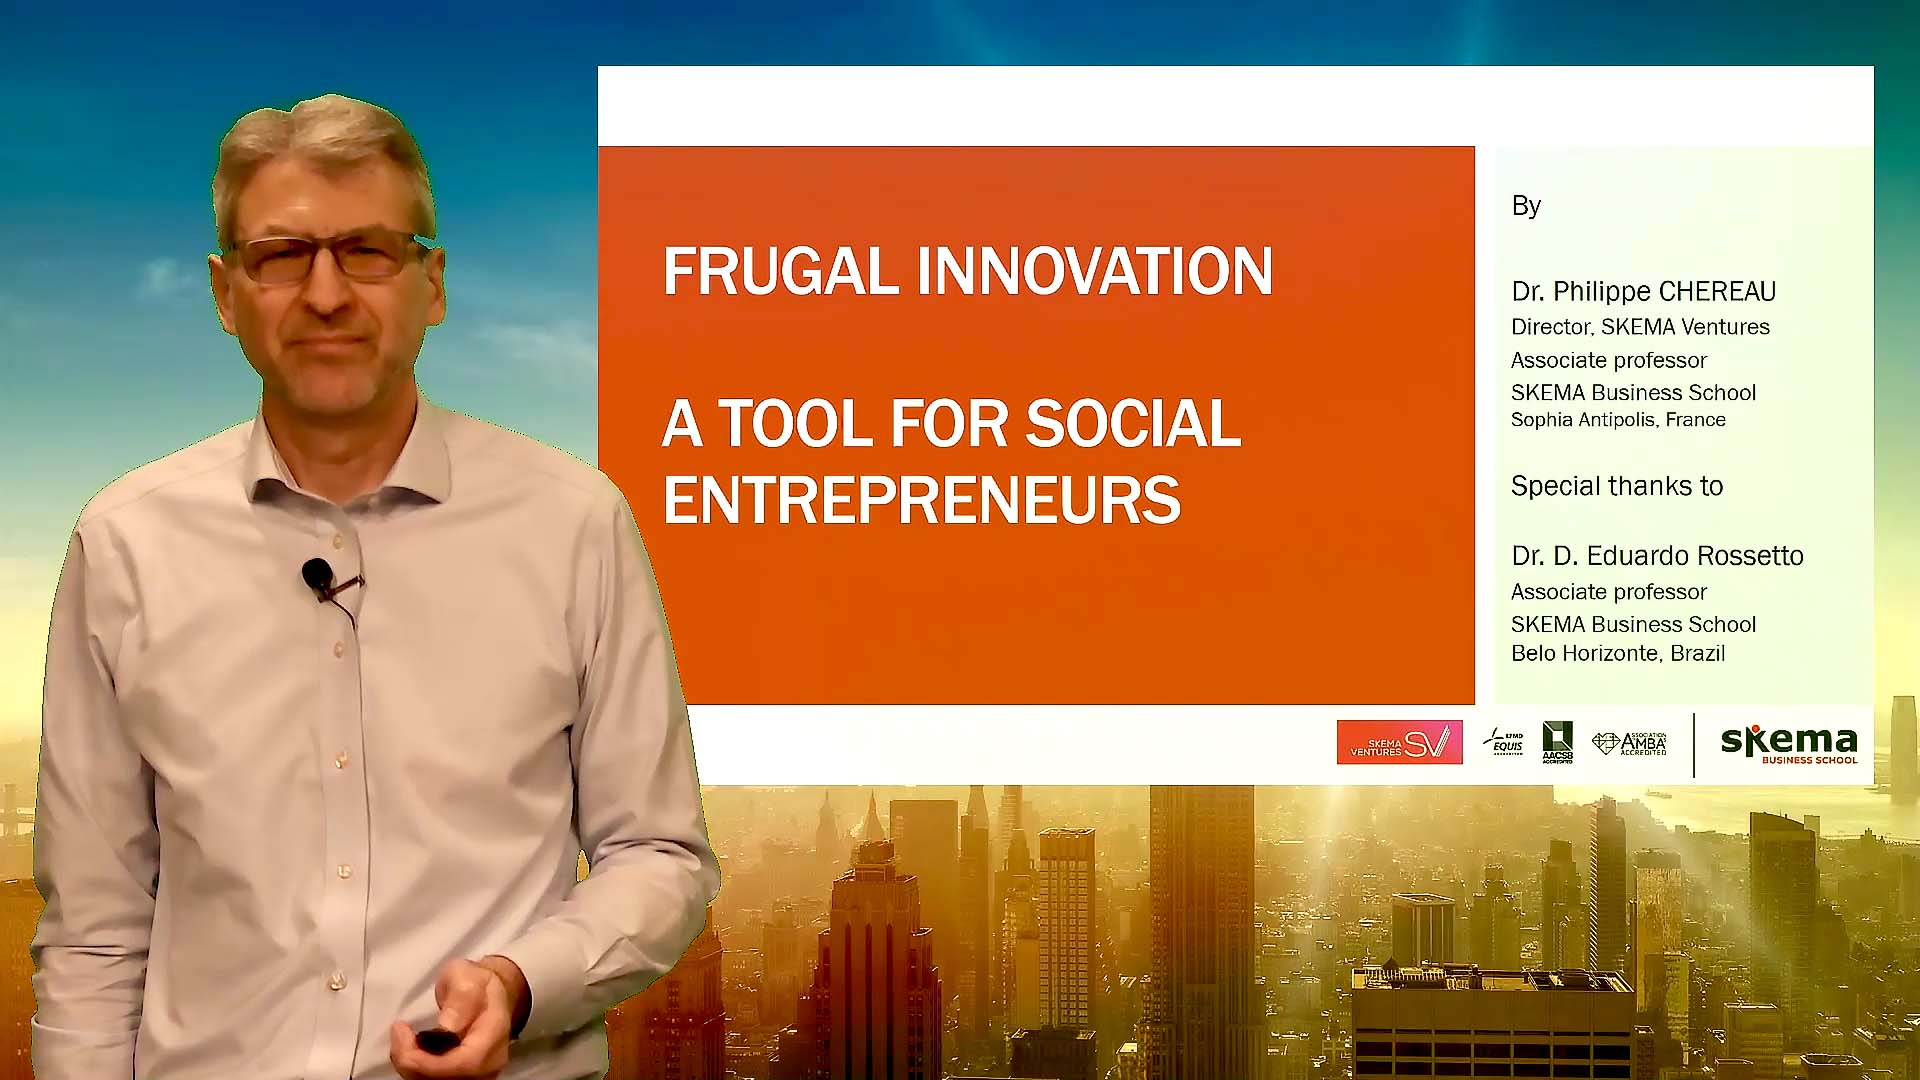 MOOC: Learn how to 'do more with less' through frugal innovation